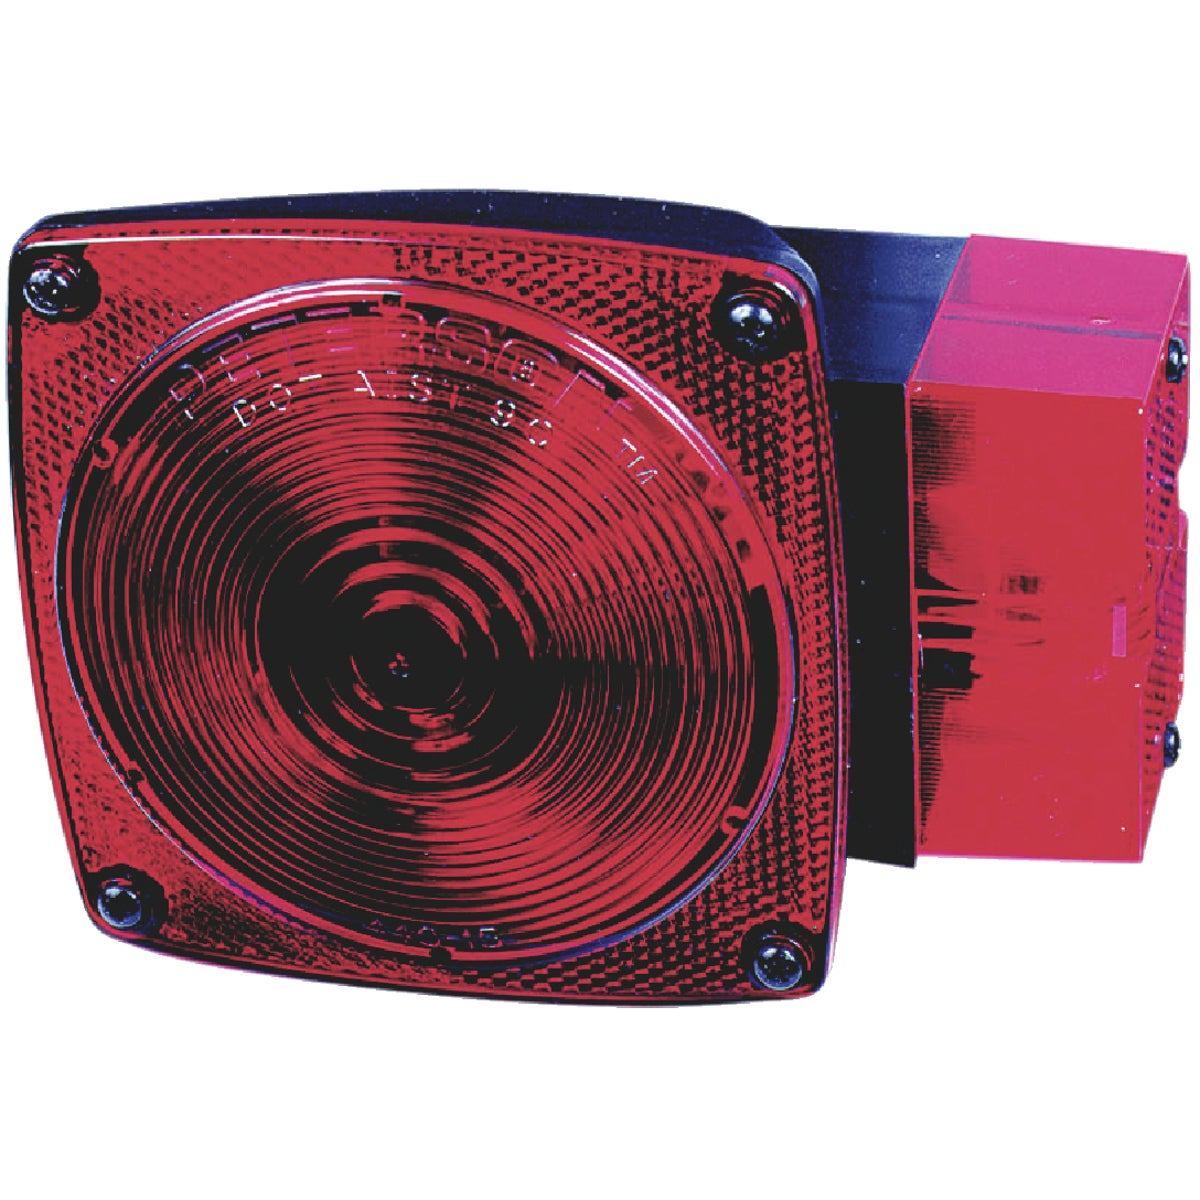 STOP & TAIL LIGHT - V452 by Peterson Mfg Co